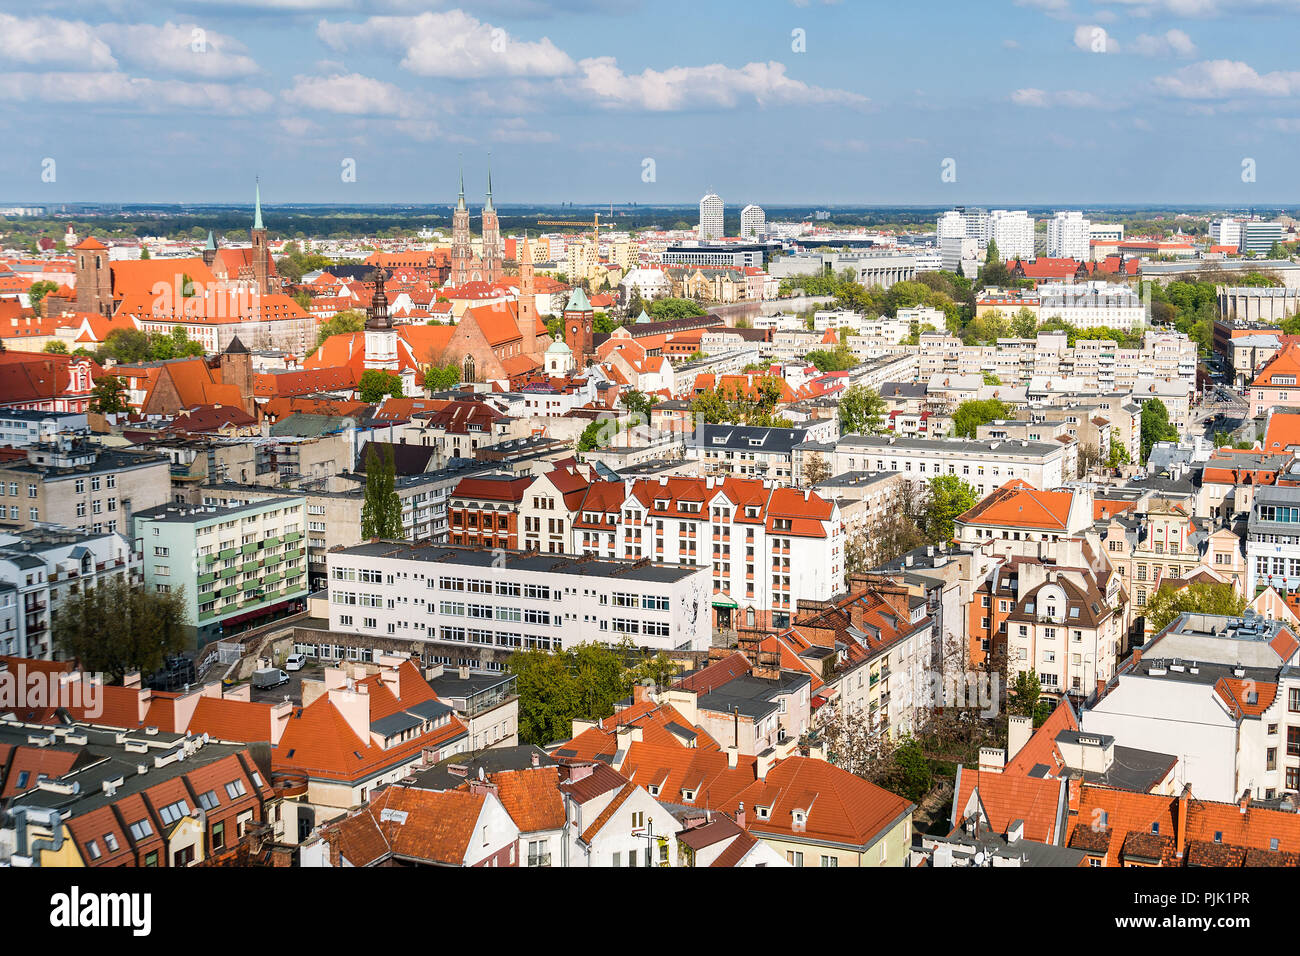 Poland, Wroclaw, old town, view from the Elisabeth Church to the northeast - Stock Image